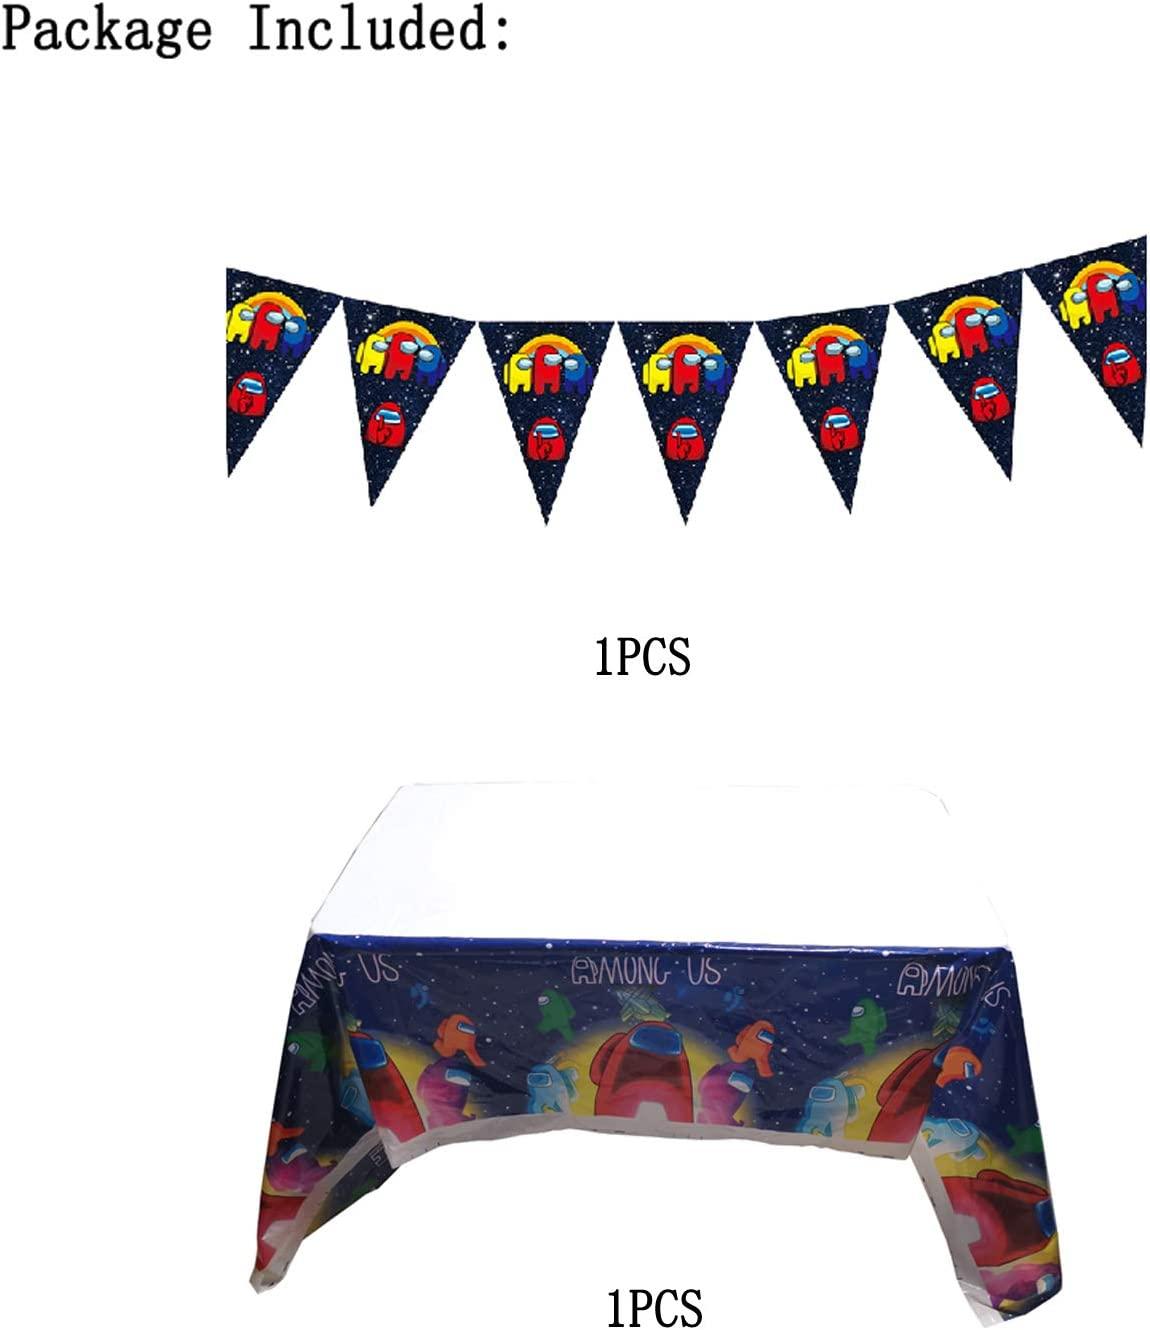 1 PCS Among Us Plastic Tablecloth Tablecovers and 1PCS Banner for Among Us Themed Birthday Party Decorations Supplies for Kids